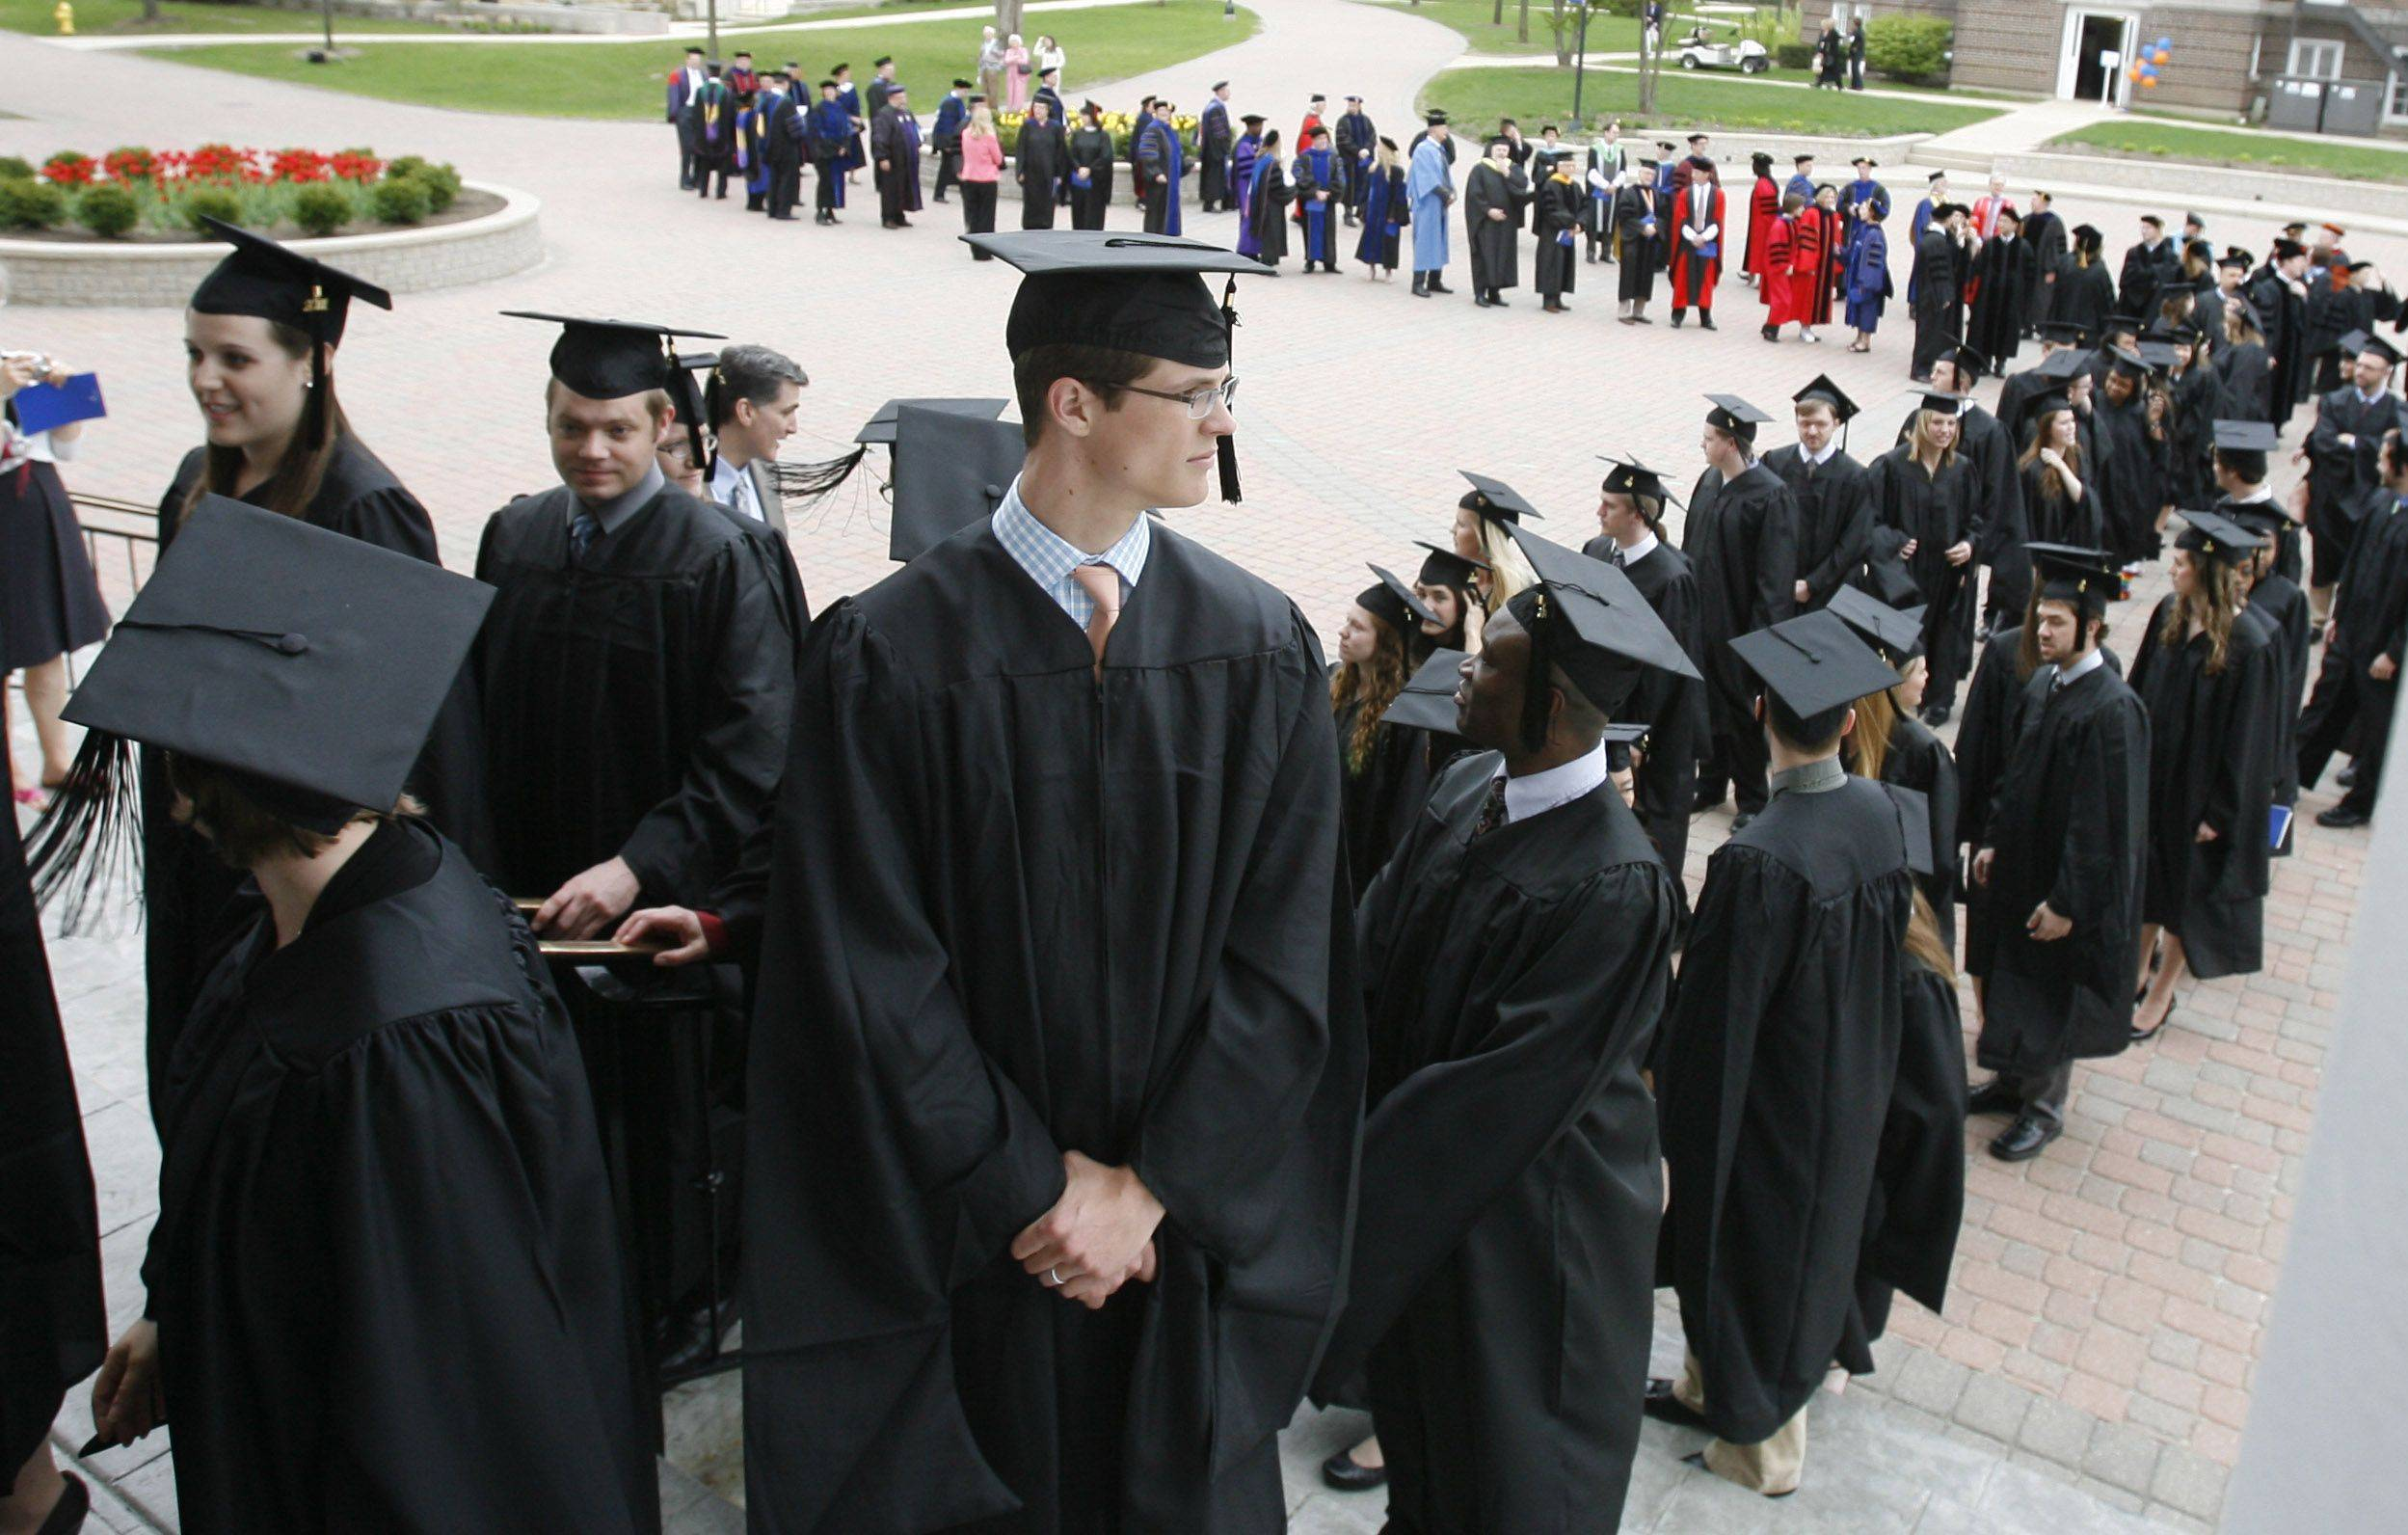 Graduate Student Jon Hughes, center, looks back as he and other graduate students prepare to enter the Edman Memorial Chapel for commencement exercises at Wheaton College.